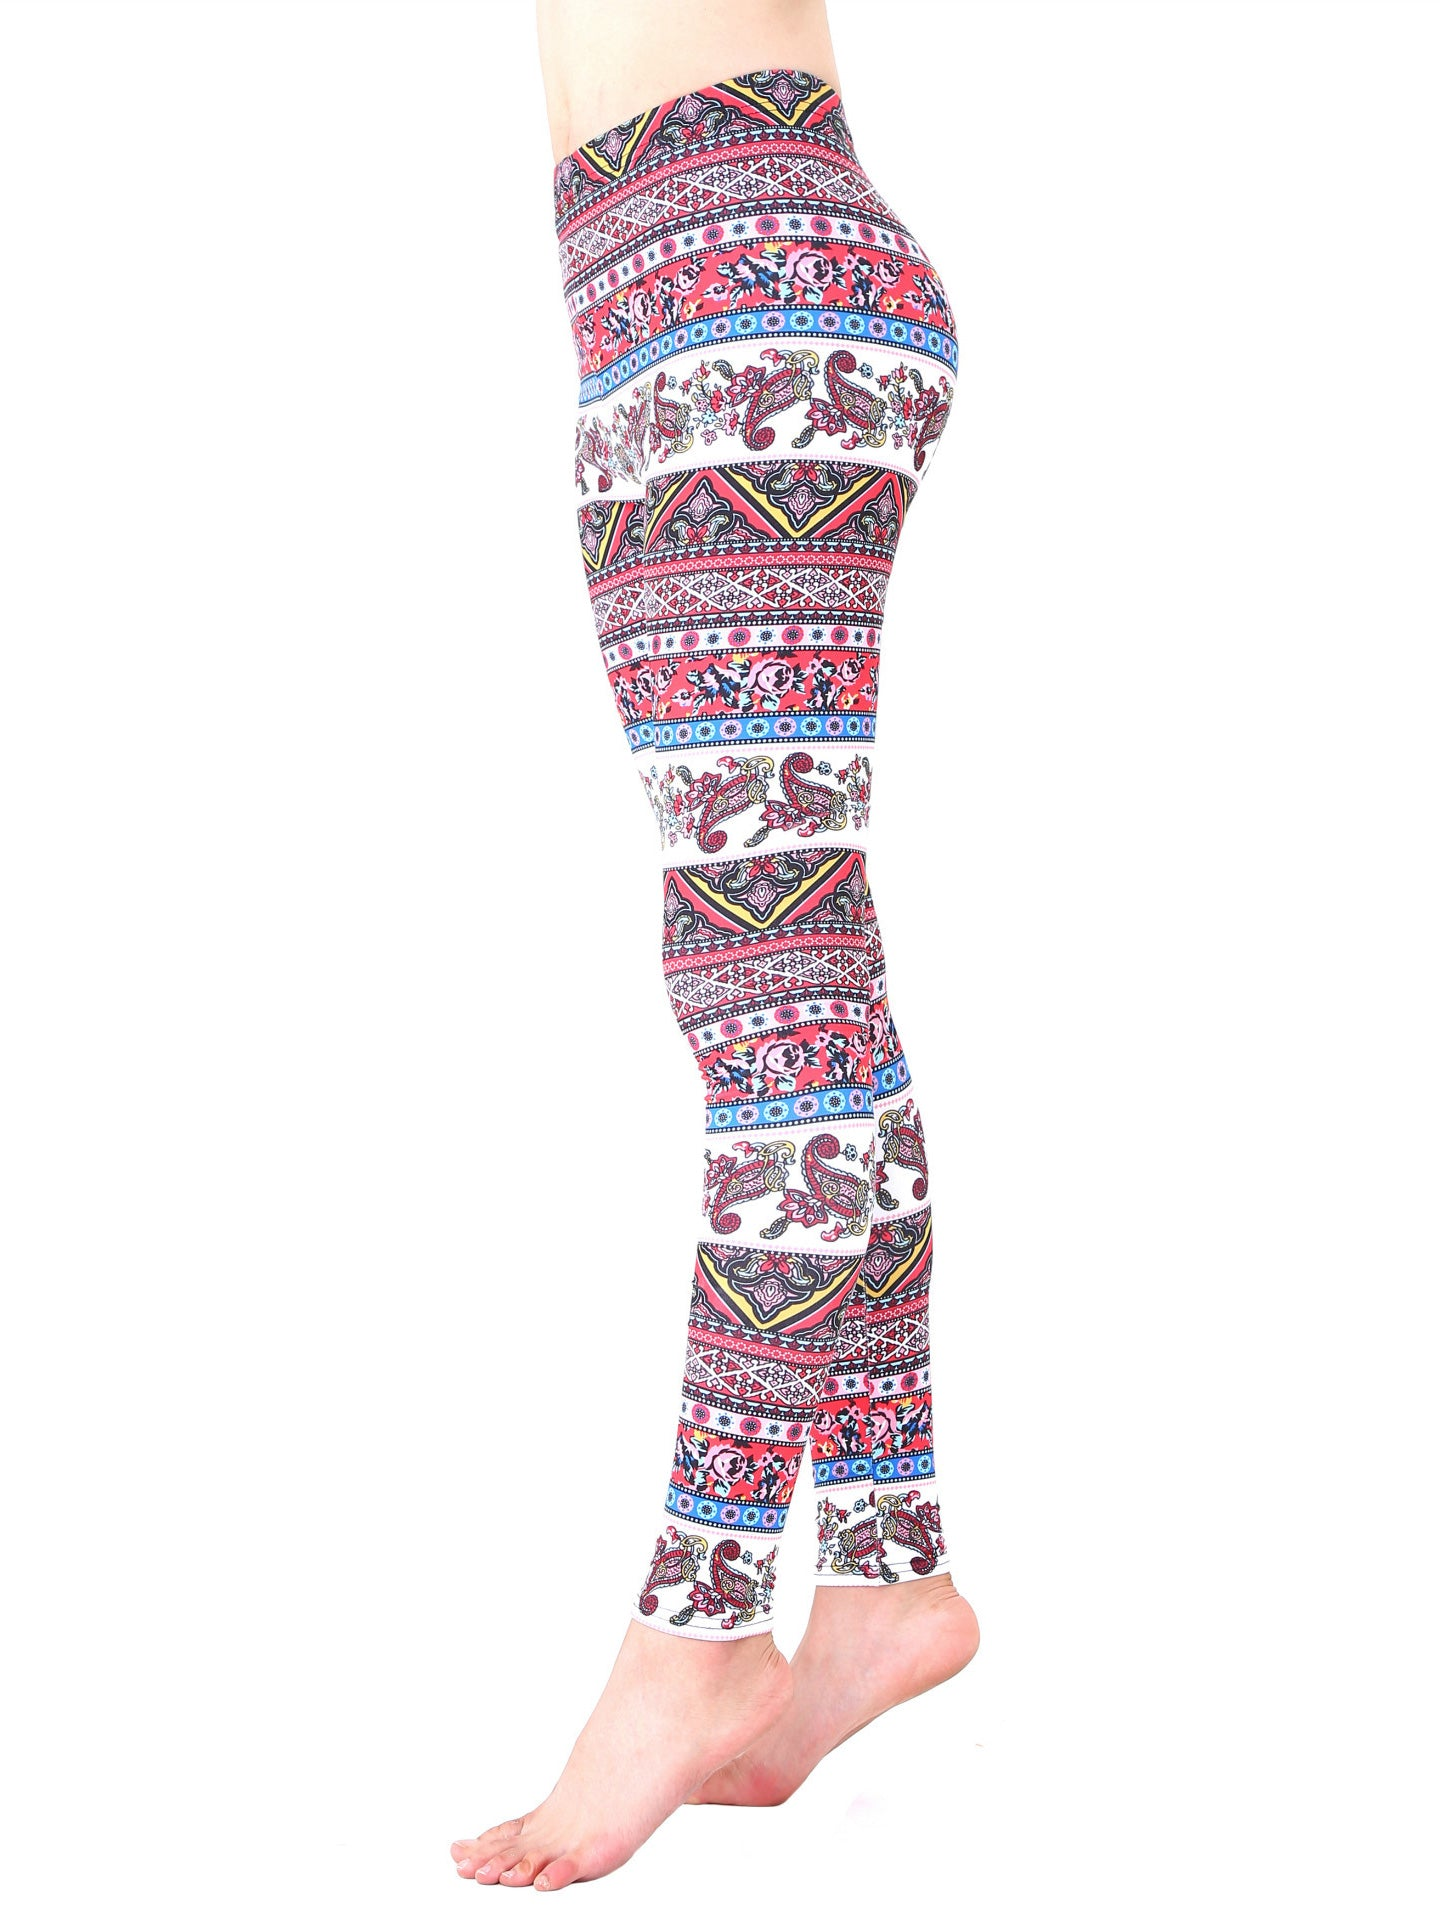 floral print paisley striped yoga pants sports leggings pink blue cute elephant leaf print